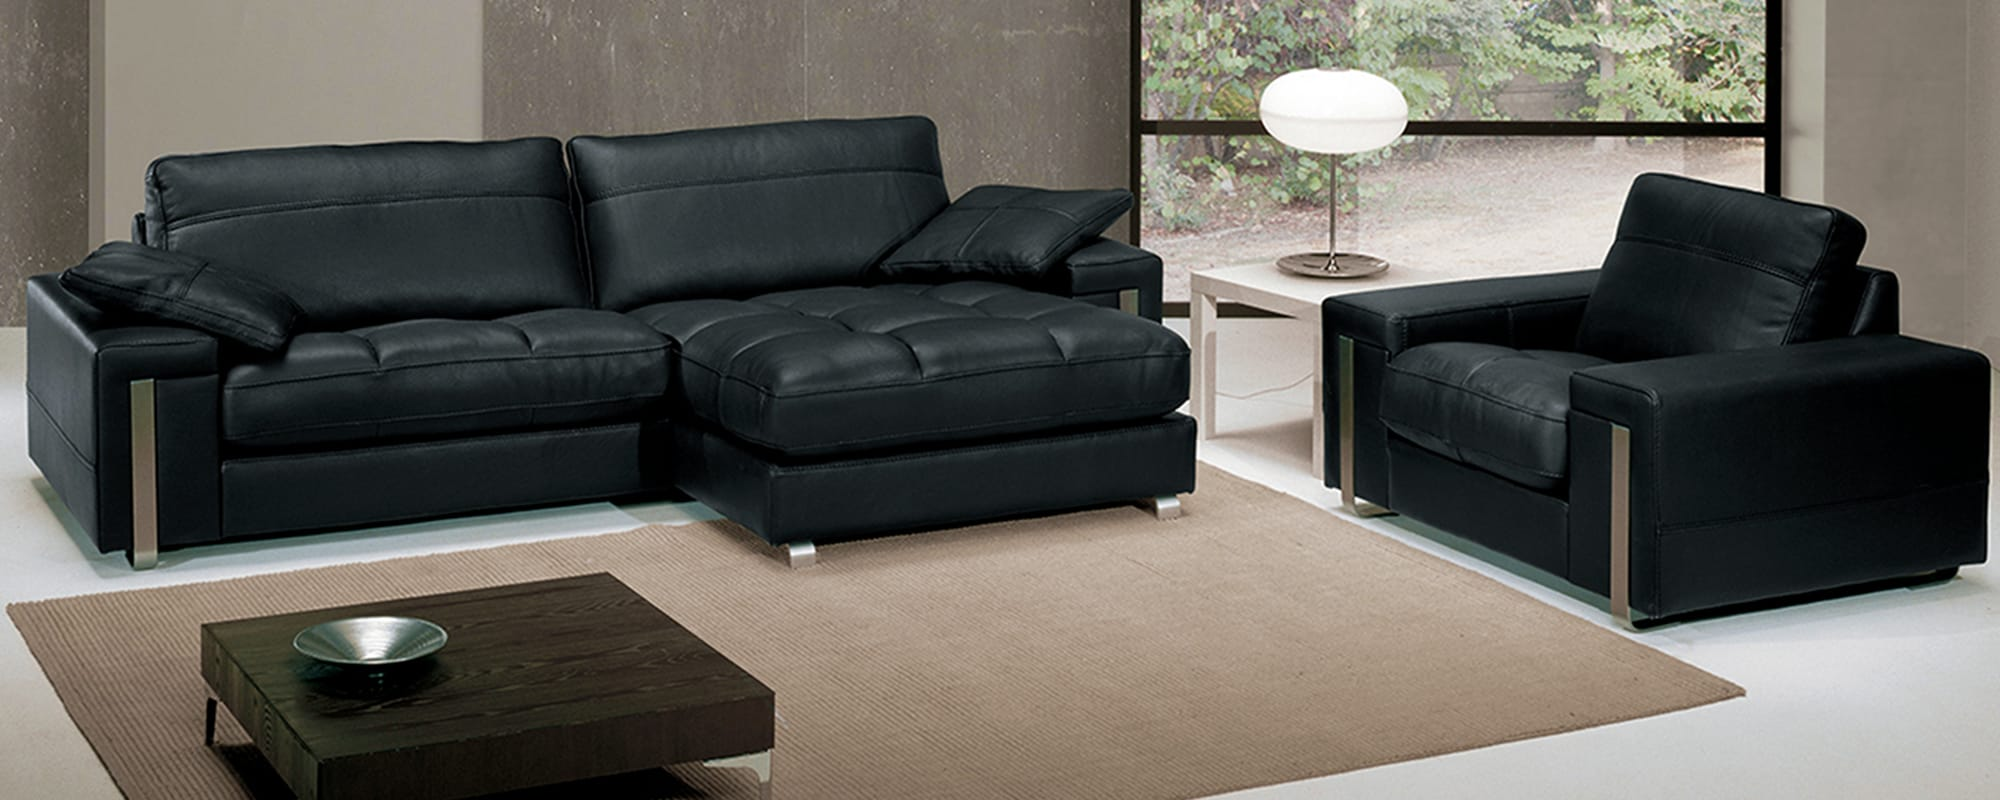 ARIA 4 Seat Wide Sofa